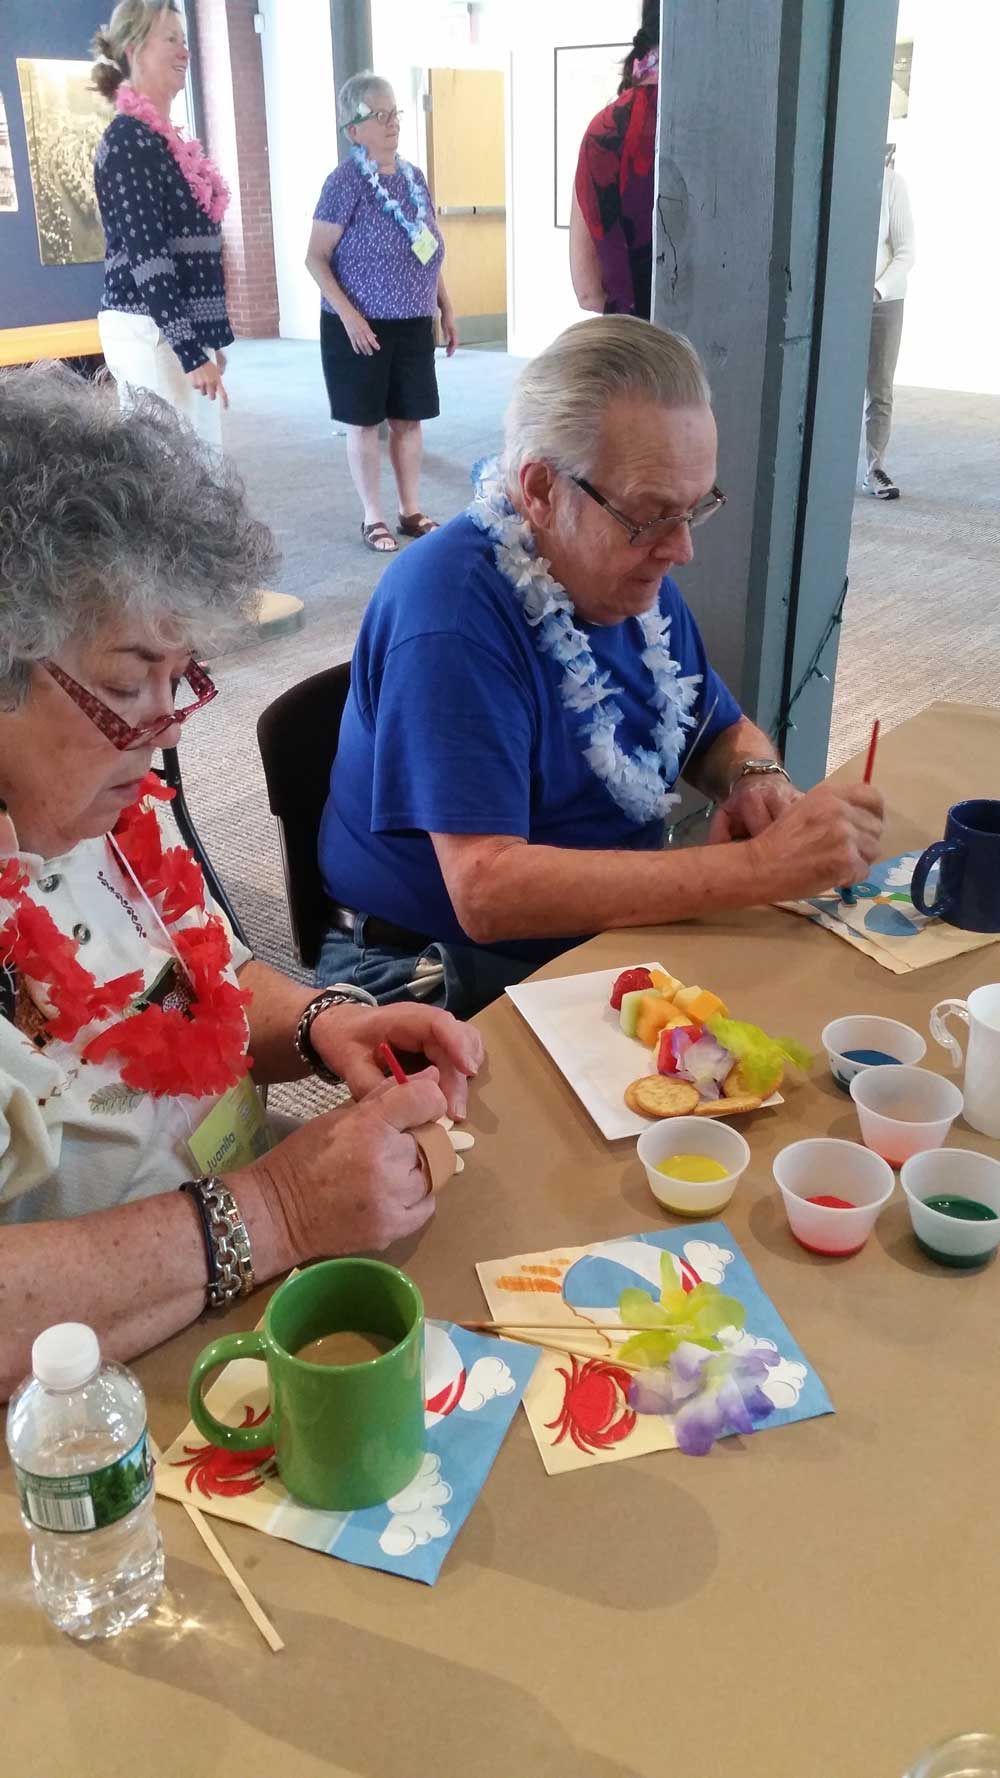 Older Man and Woman Making a Hawaiin Craft